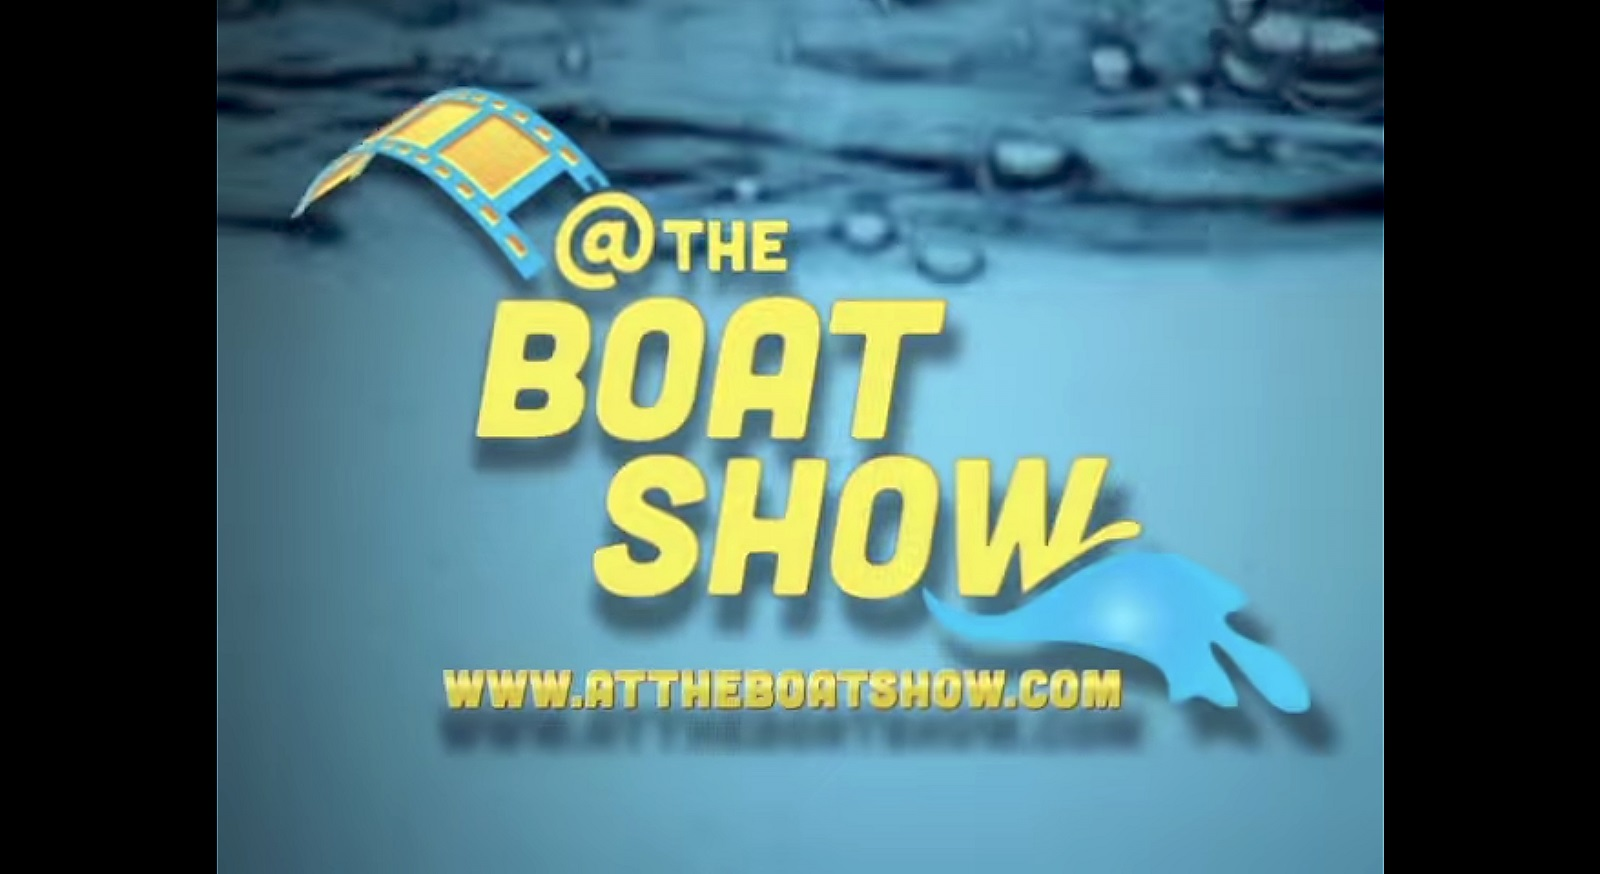 Snag-A-Slip Live at the 2015 U.S. Powerboat Show